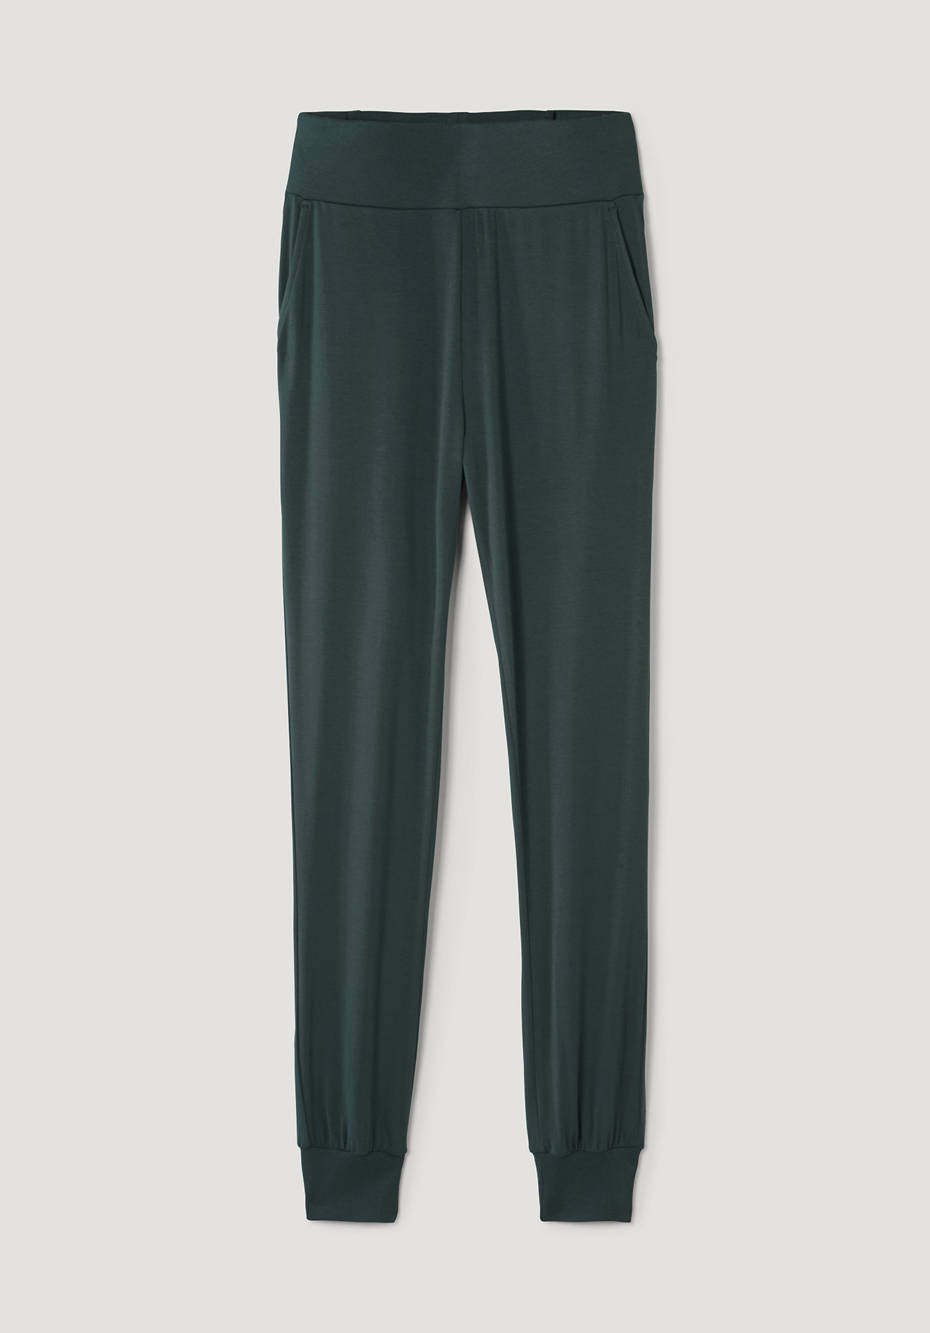 Wellness trousers made from TENCEL ™ Modal